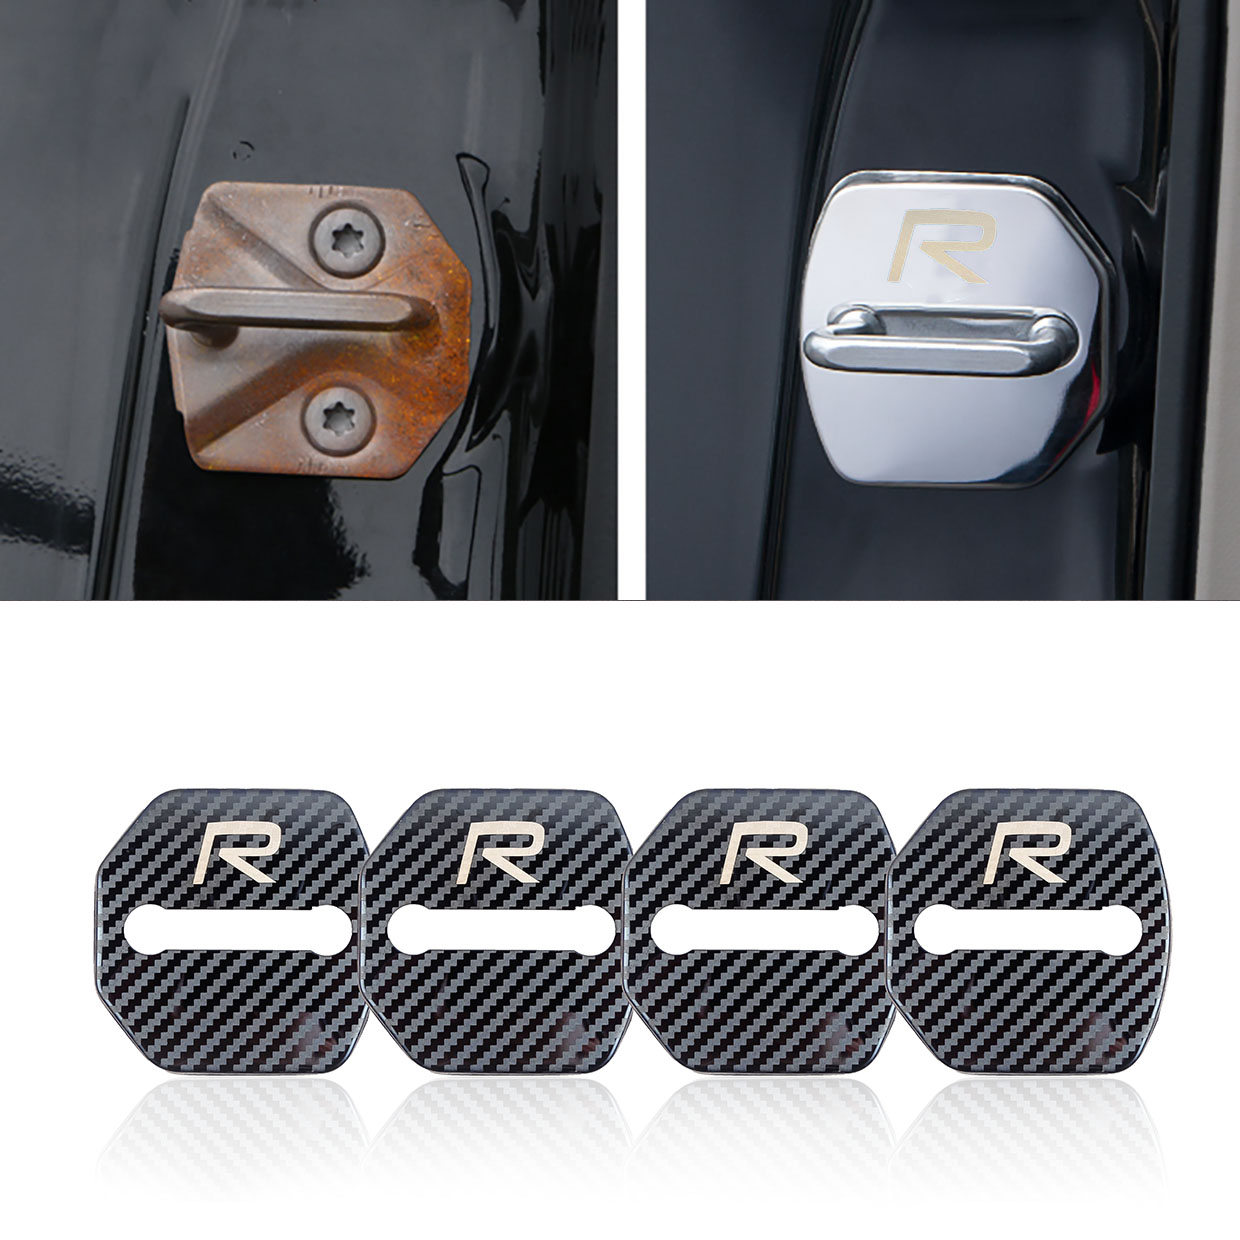 4pcs set Anti Rust Car Door Lock FOR Volvo RDESIGN R DESIGN for Volvo V70 XC60 S60 V60 V40 XC90 Car accessories